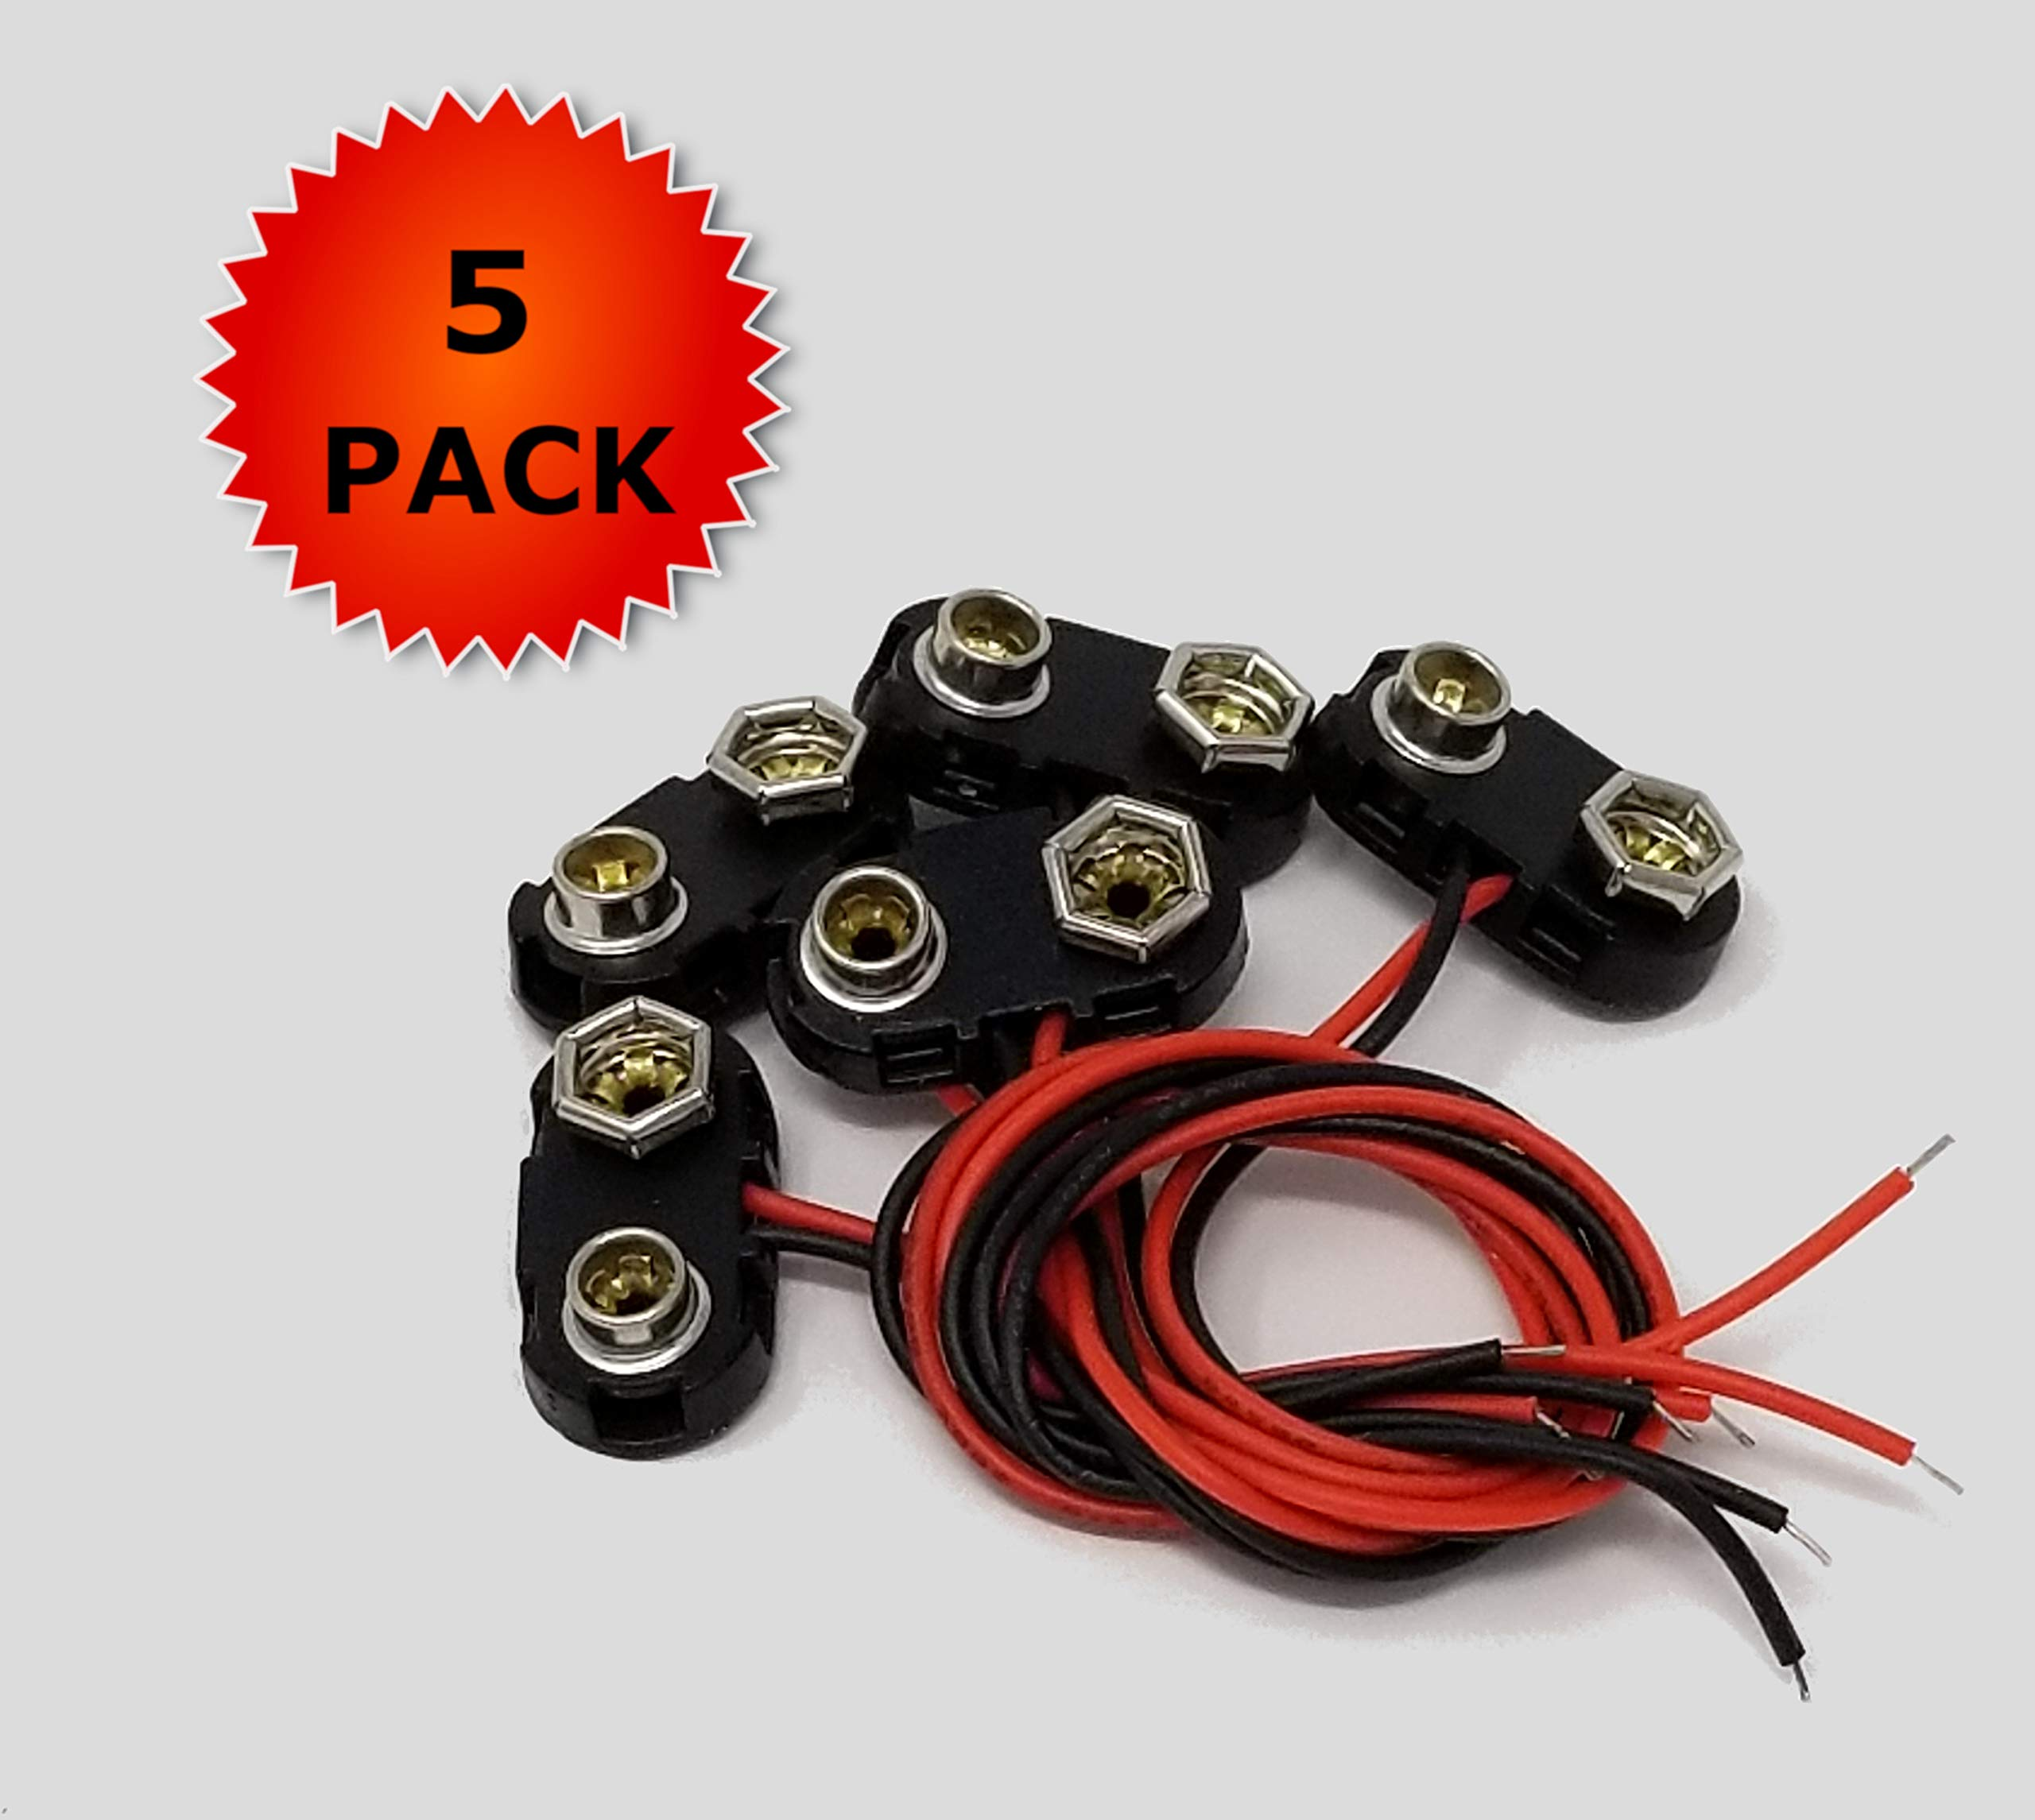 5pack 9v Battery Clips with Bare Leads by Maker Supply